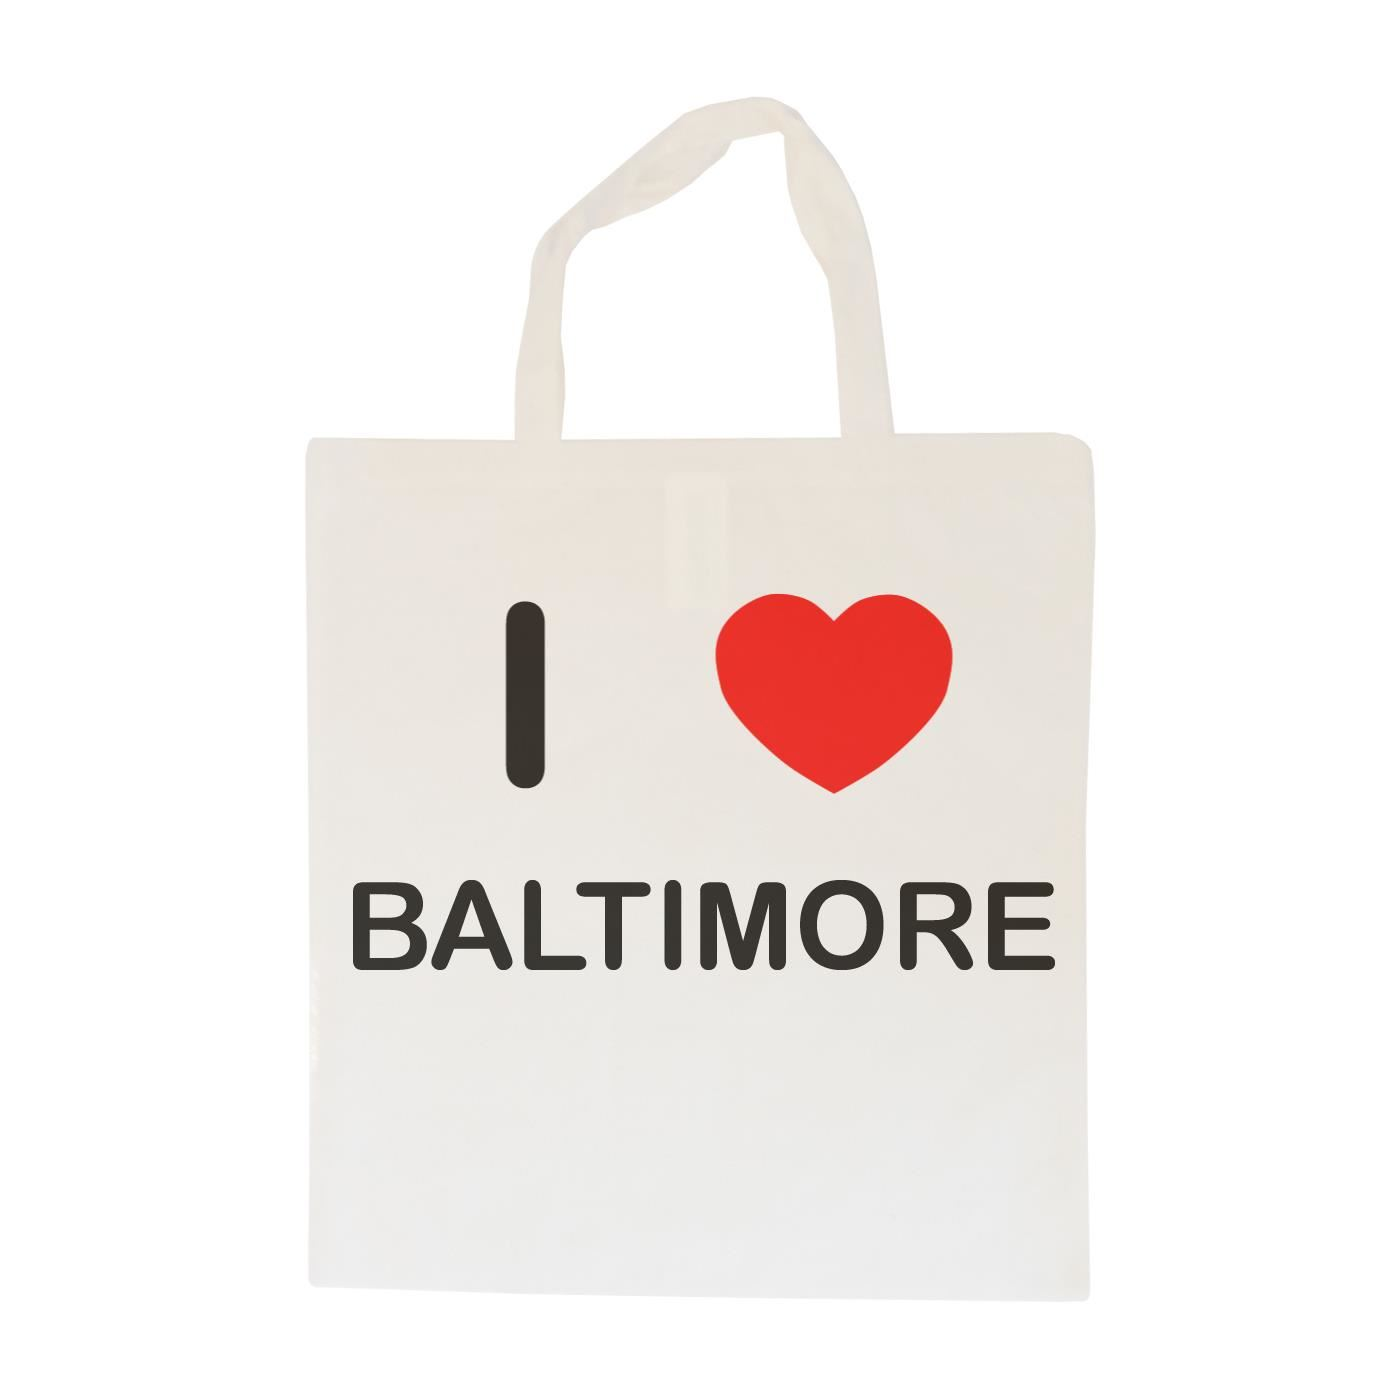 I Love Baltimore - Cotton Bag | Size choice Tote, Shopper or Sling